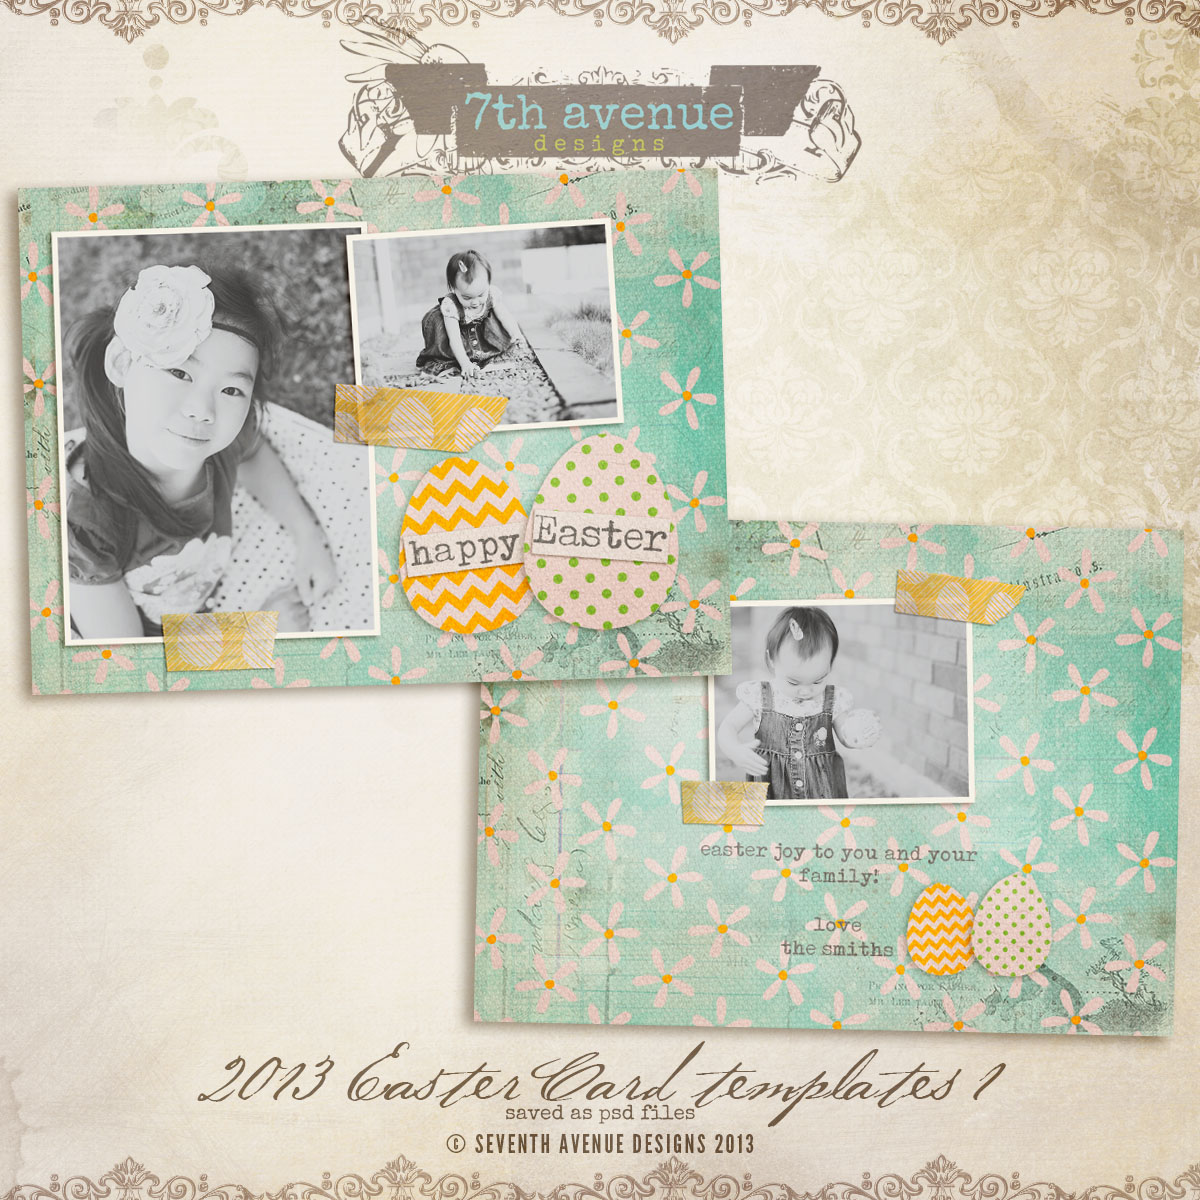 2013 Easter Card vol.1